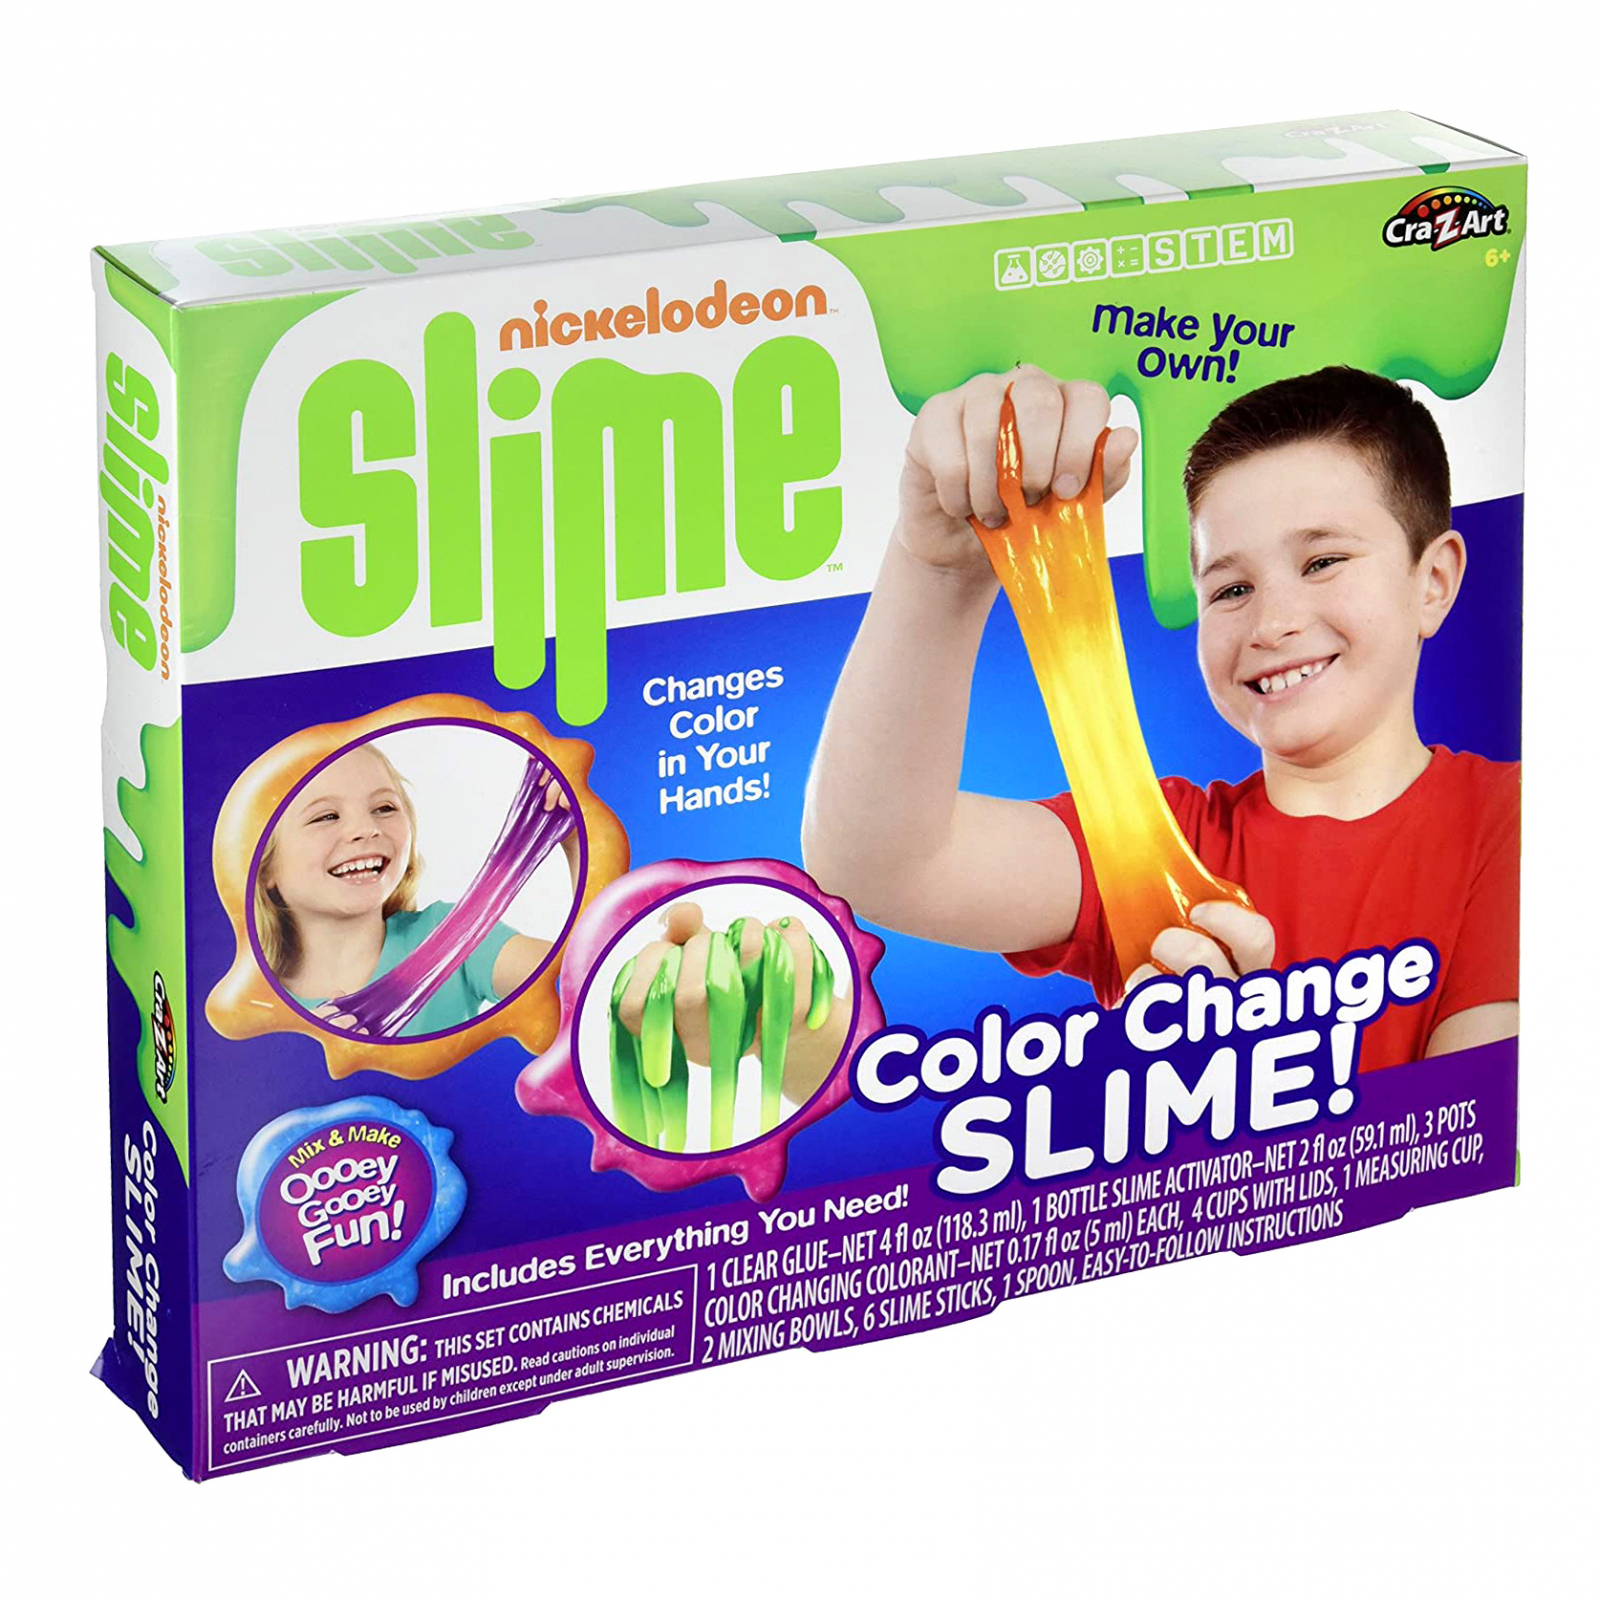 Nickelodeon Color Changing DIY Slime Science Kit for Kids